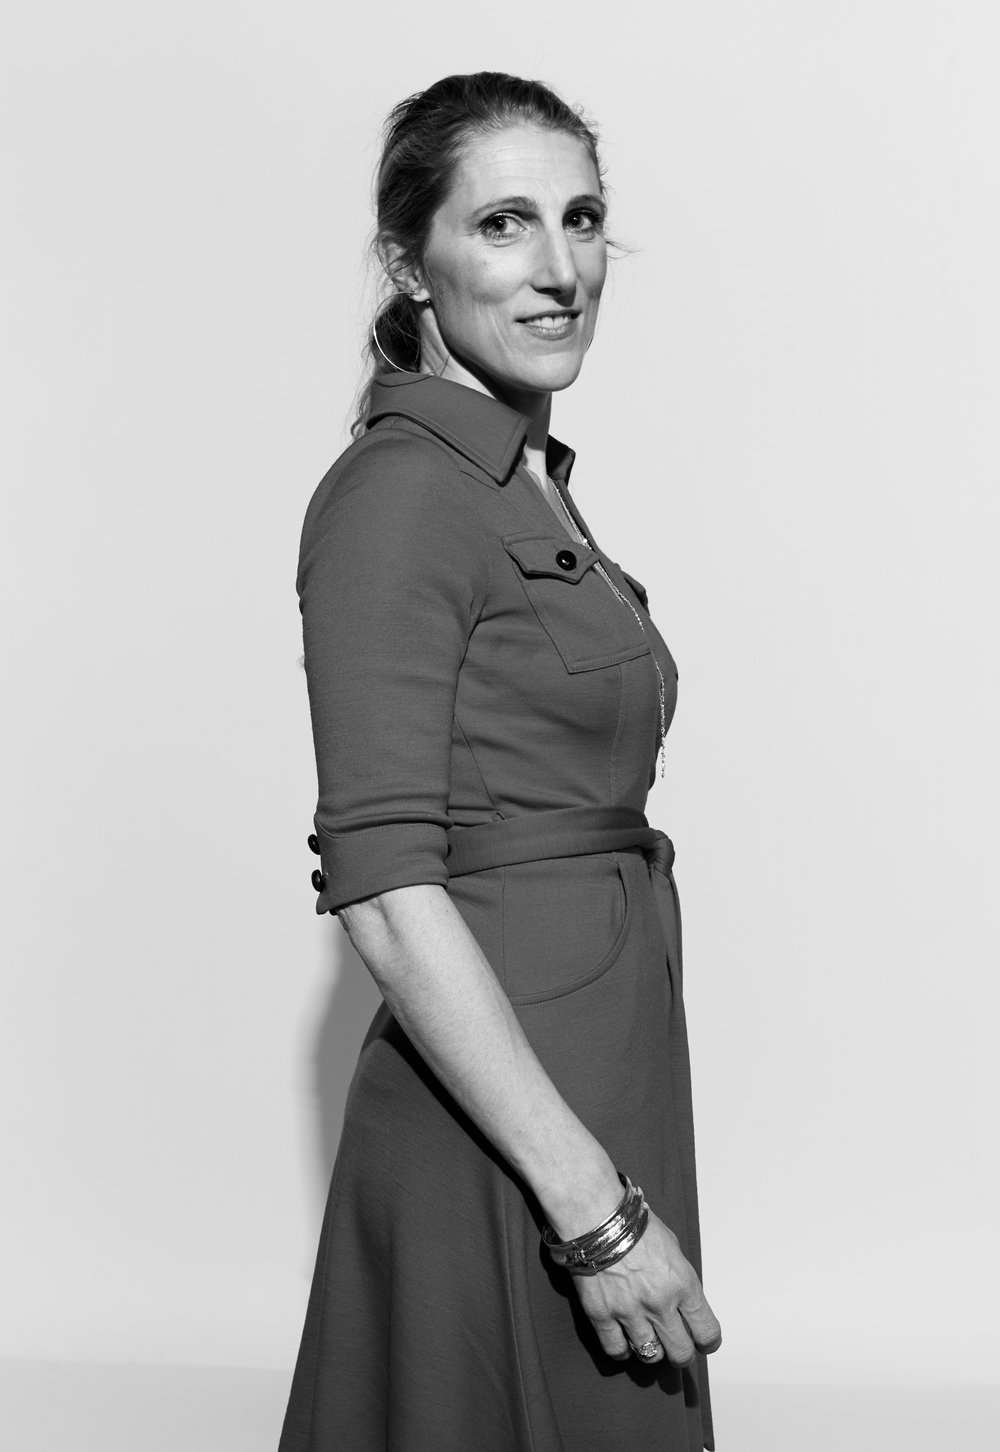 Dr. Vanessa Kerry photographed by Kate Owen black and white portrait #powertrip Marie Claire Magazine portraits of power